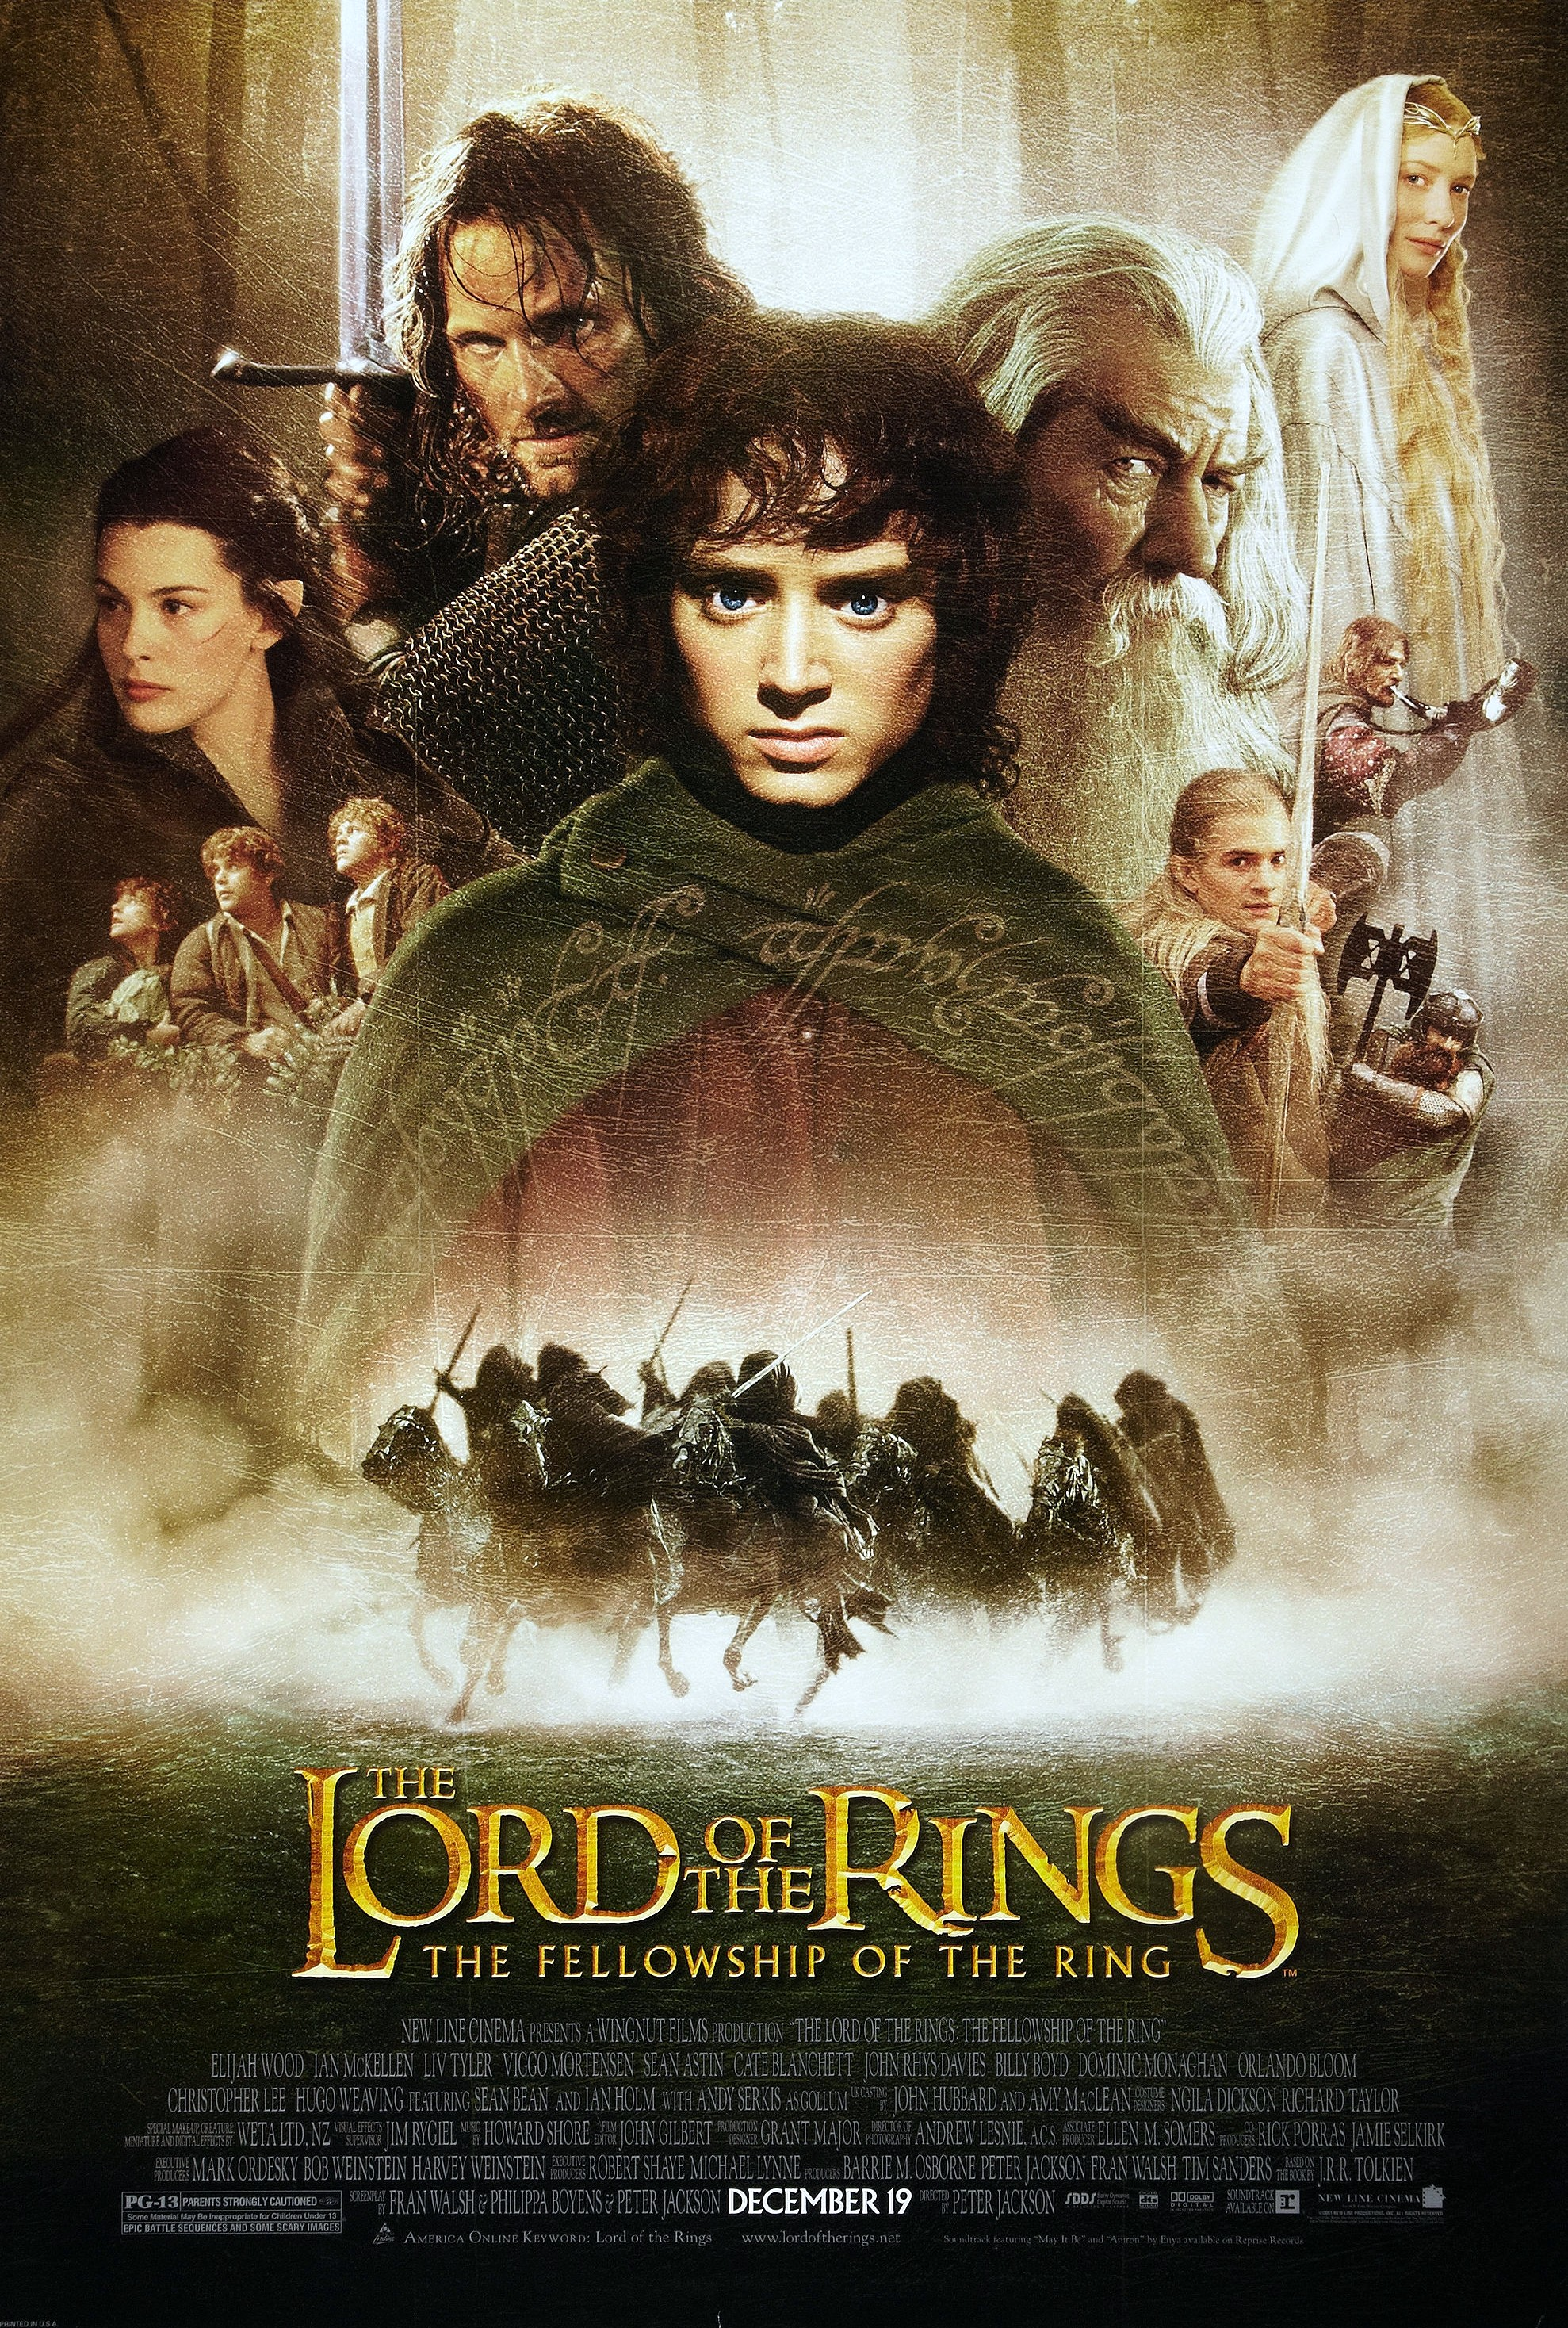 The Lord of the Rings The Fellowship of the Ring 2001 IMDb